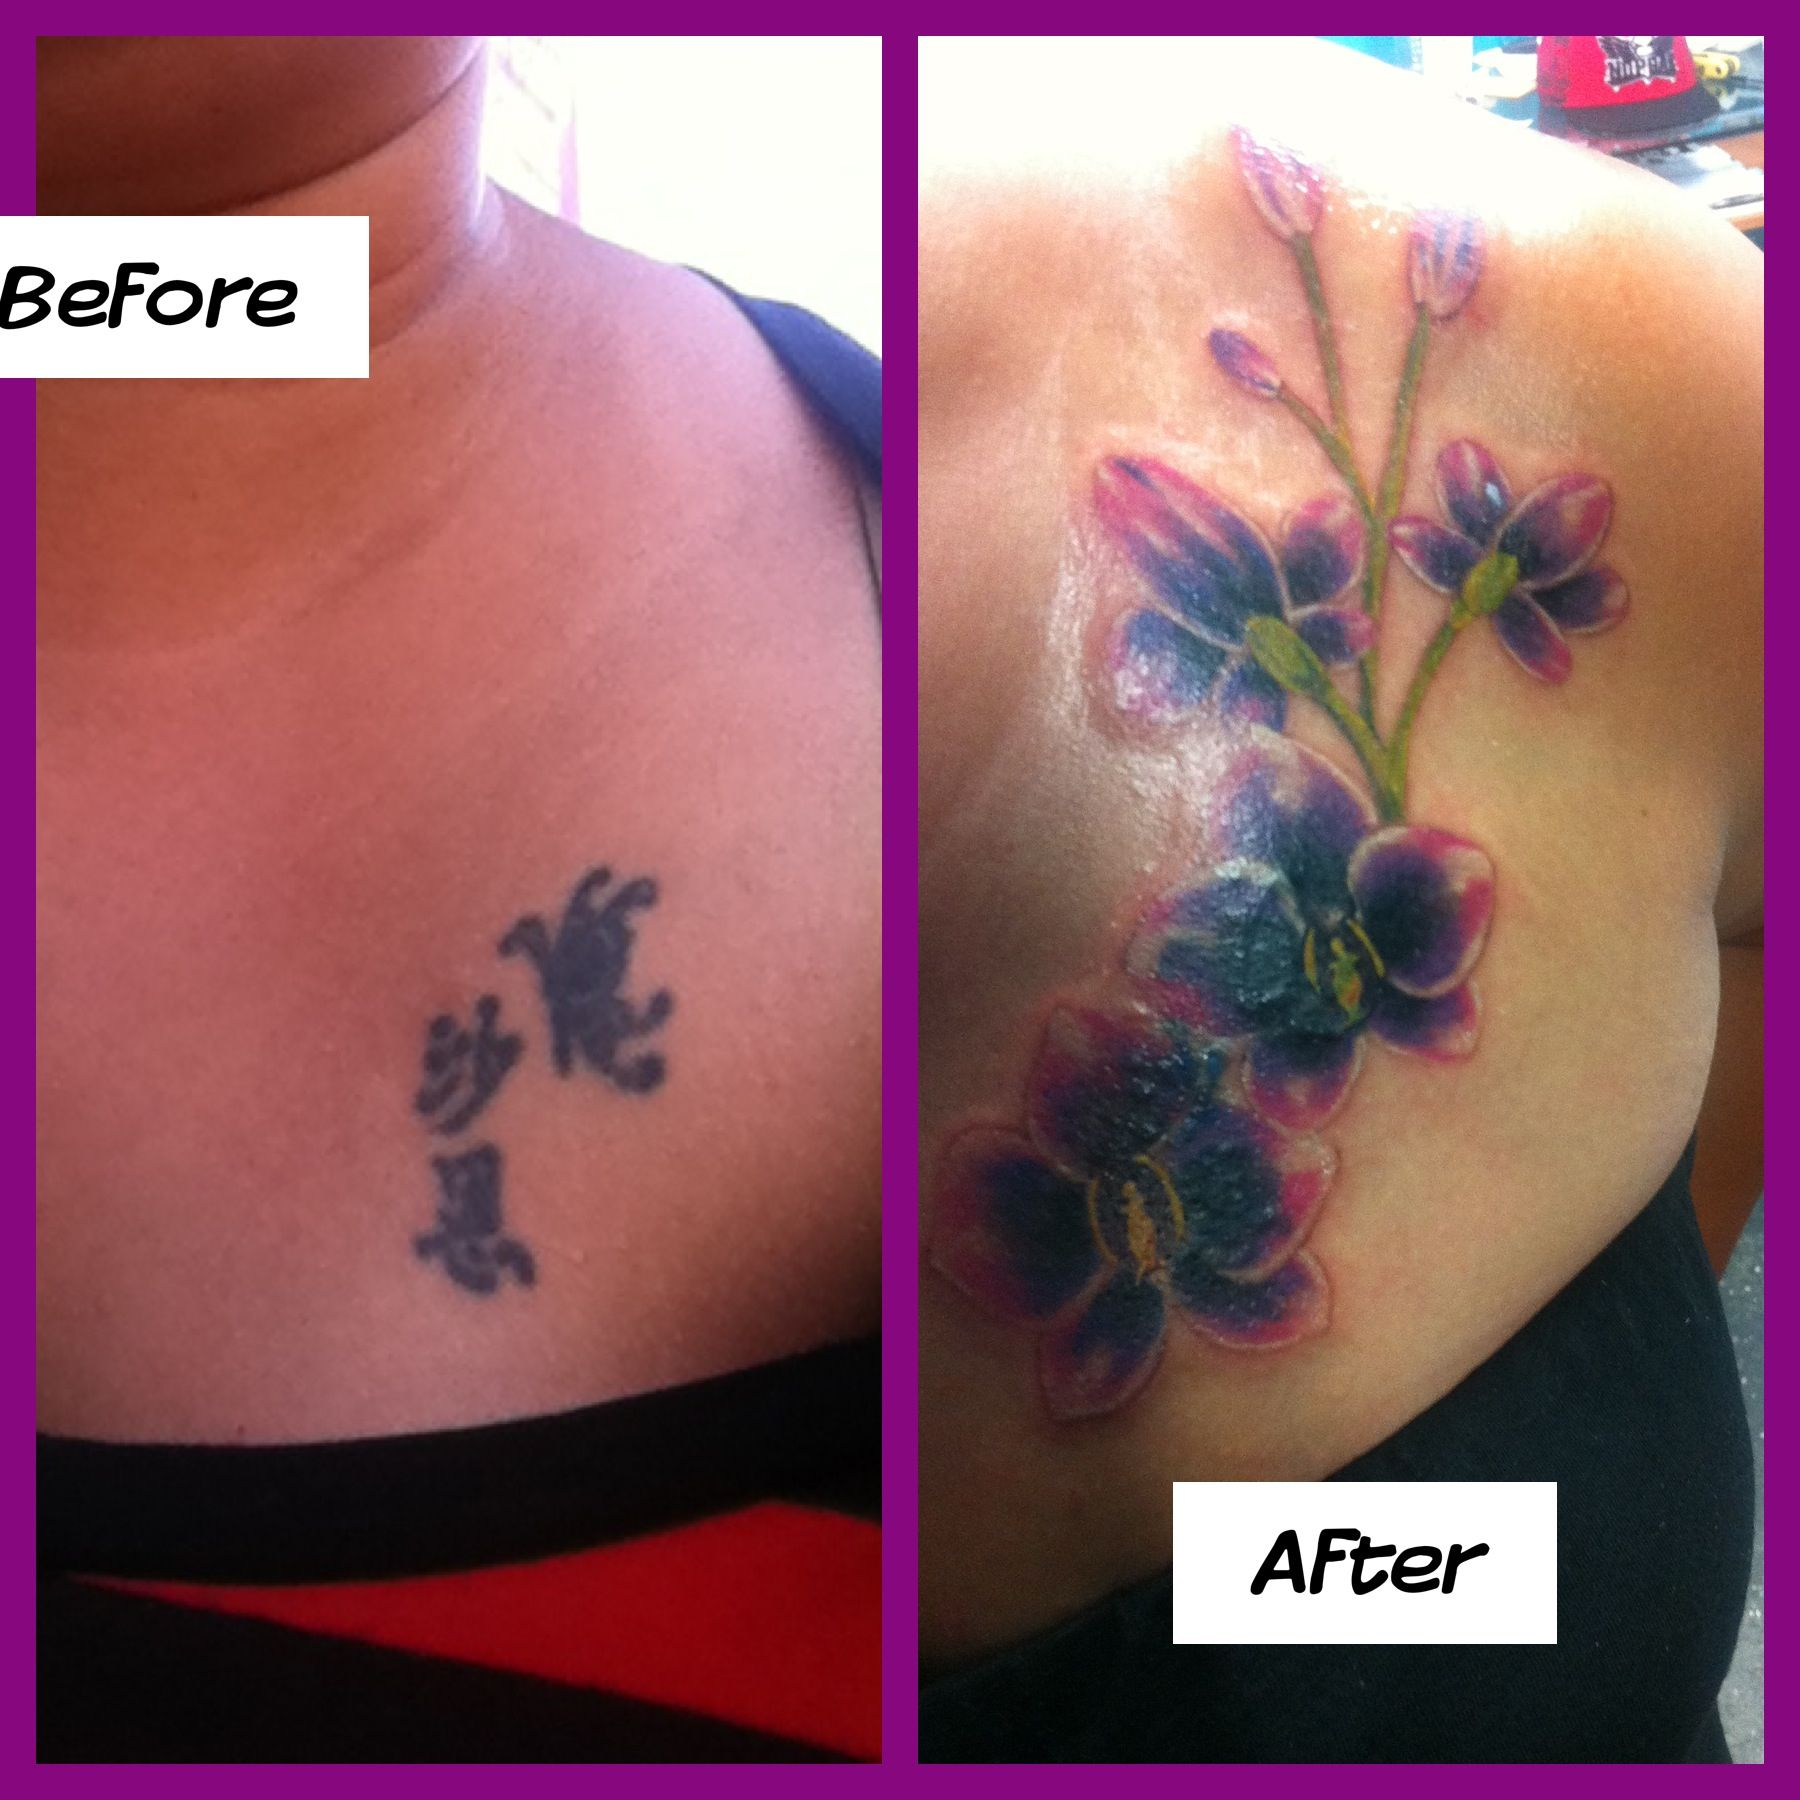 Beautiful Orchids Tattoo To Cover Up My 12 Year Old Chinese Symbol